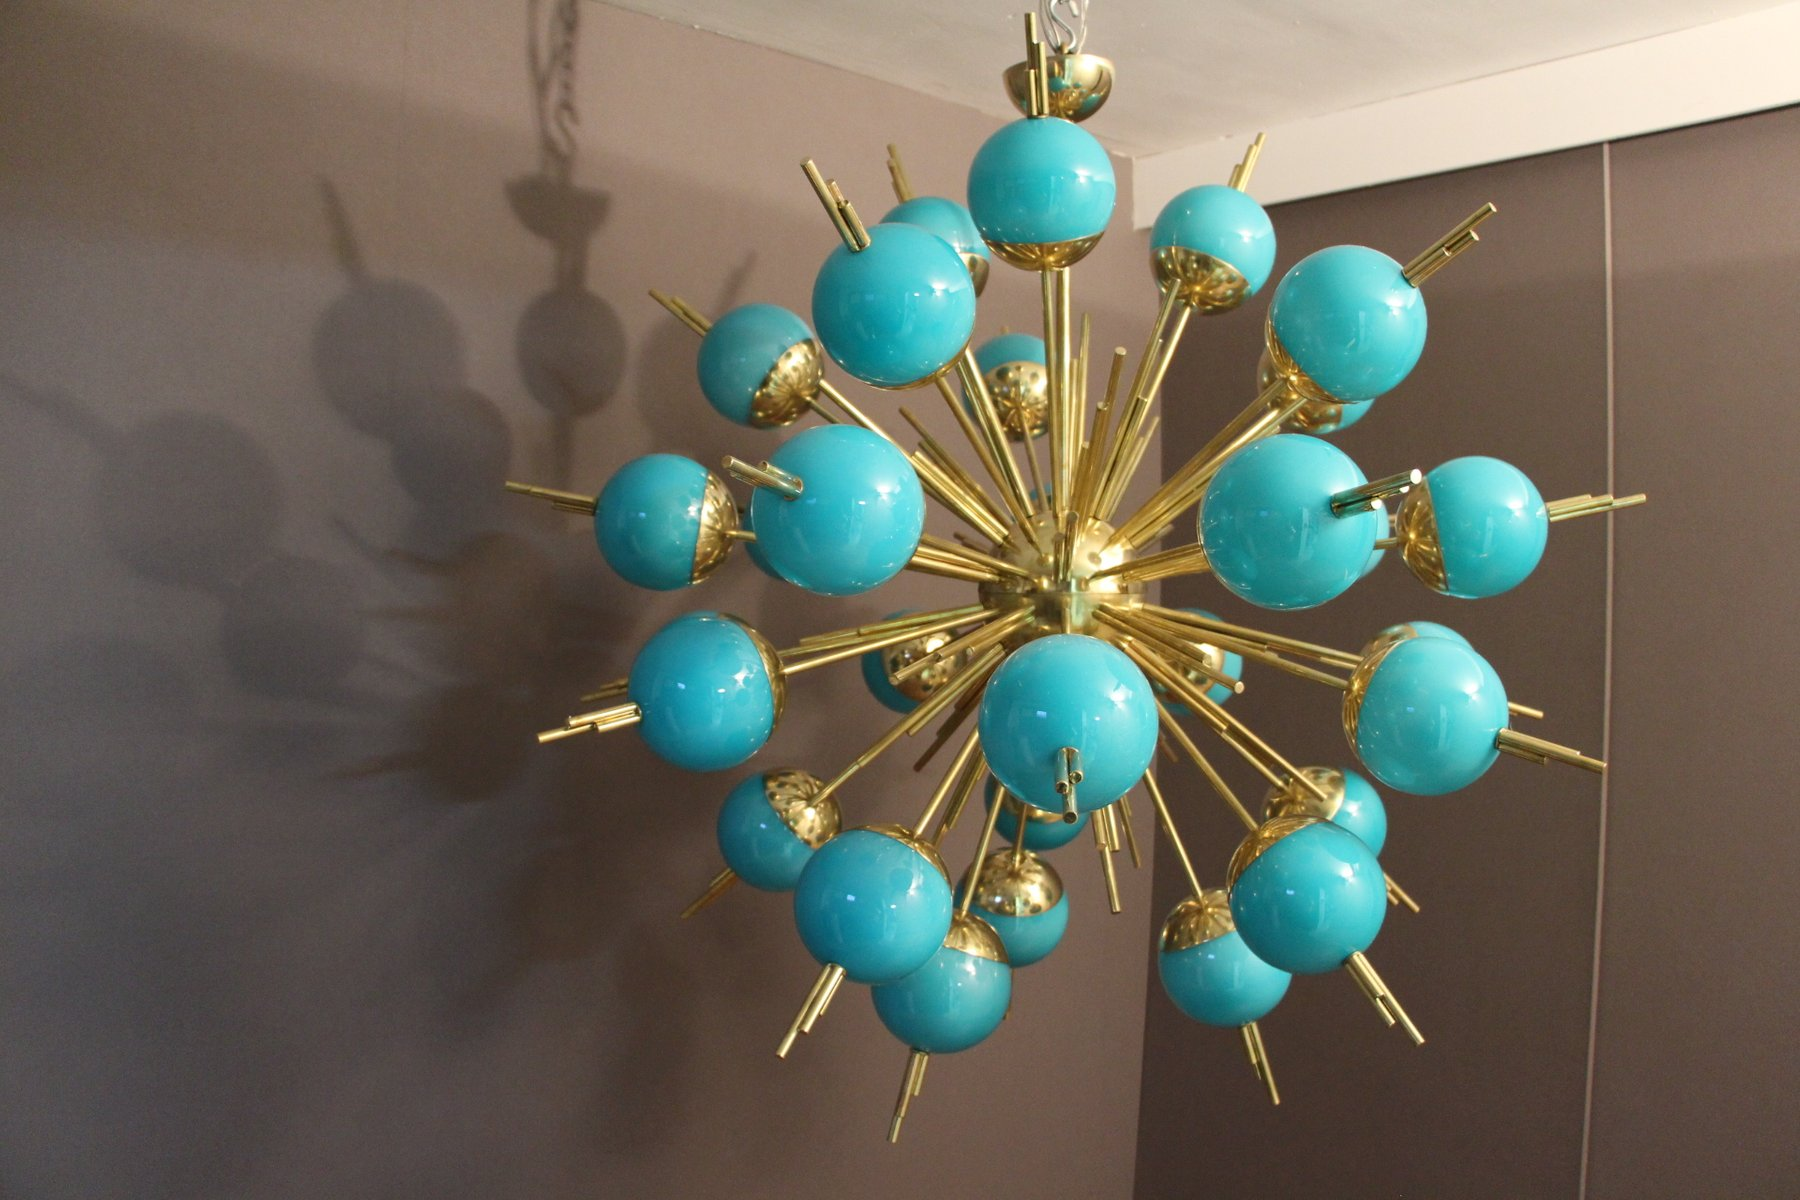 Turquoise Glass Globes and Brass Sputnik Chandelier for sale at Pamono